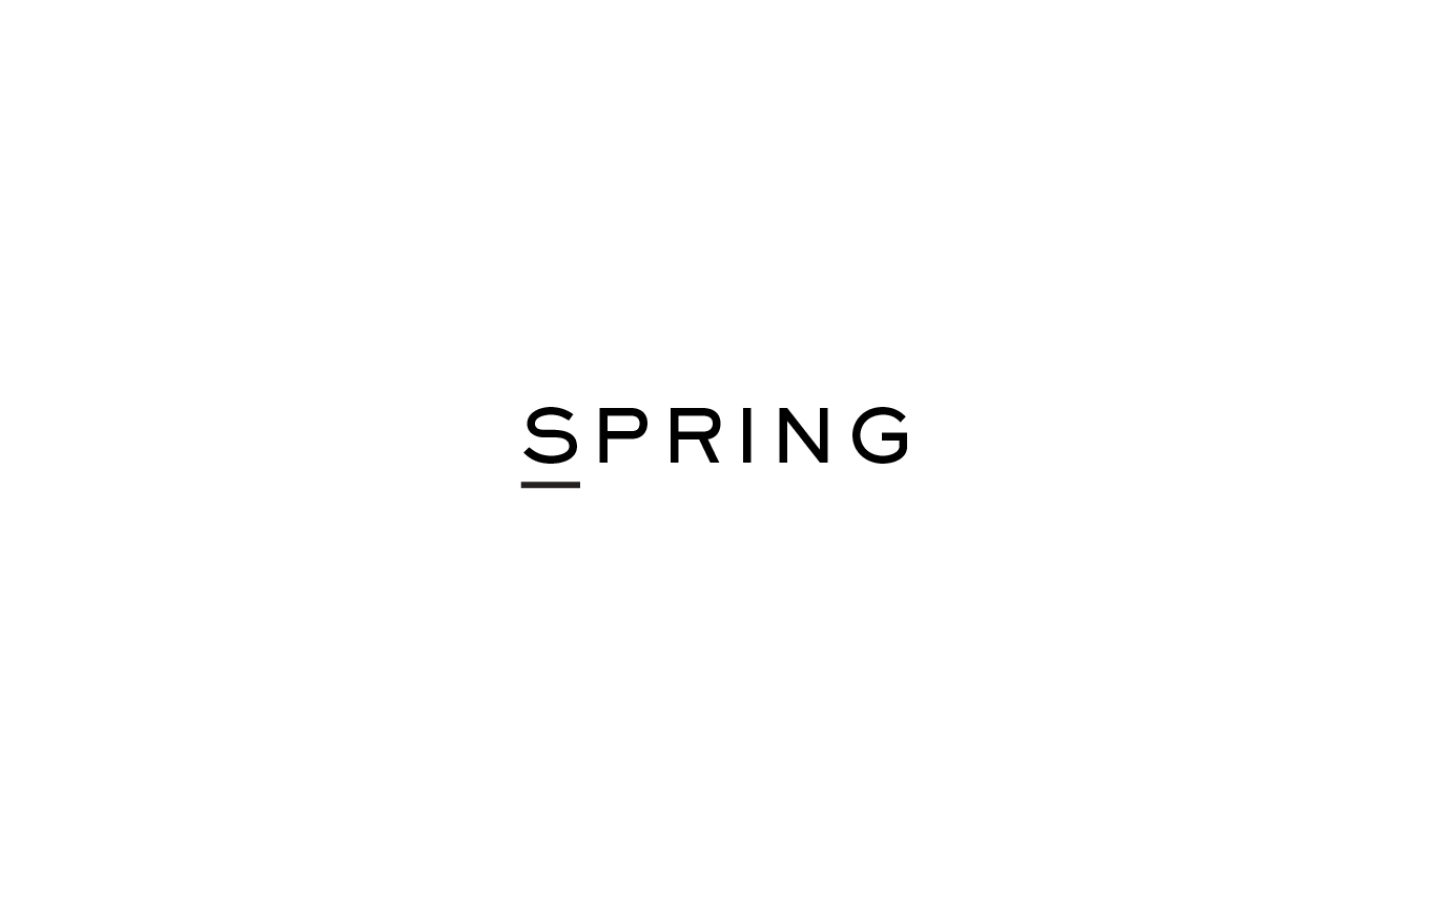 shopspring_11